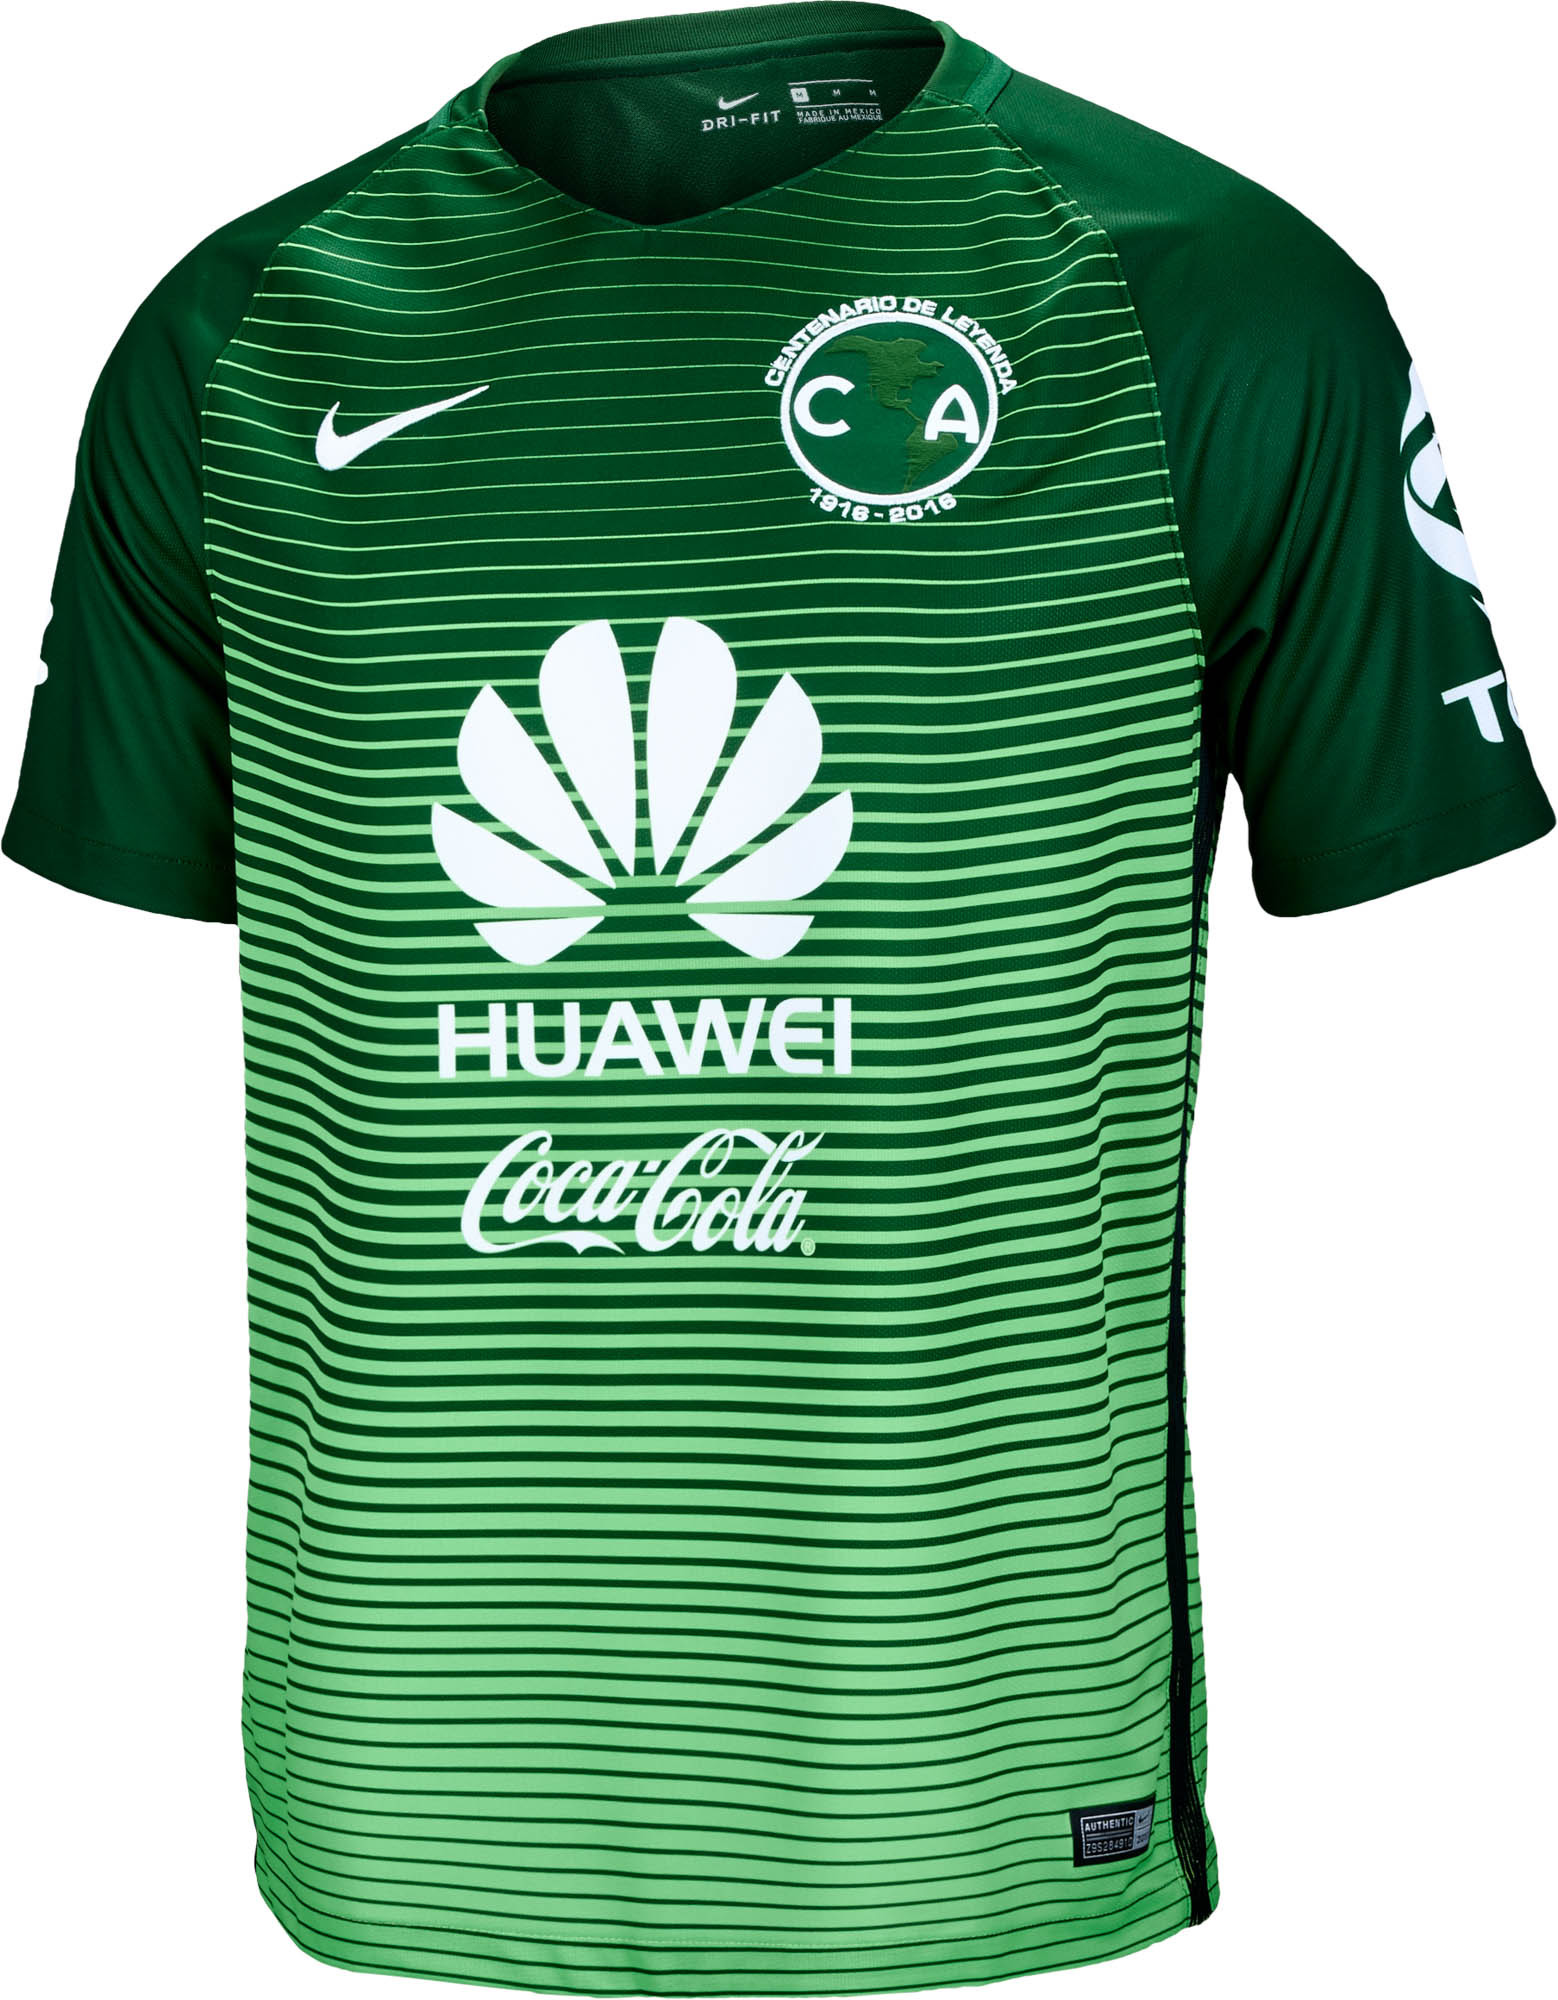 finest selection 6f7e2 b68d5 Nike Club America 3rd Jersey 2016-17